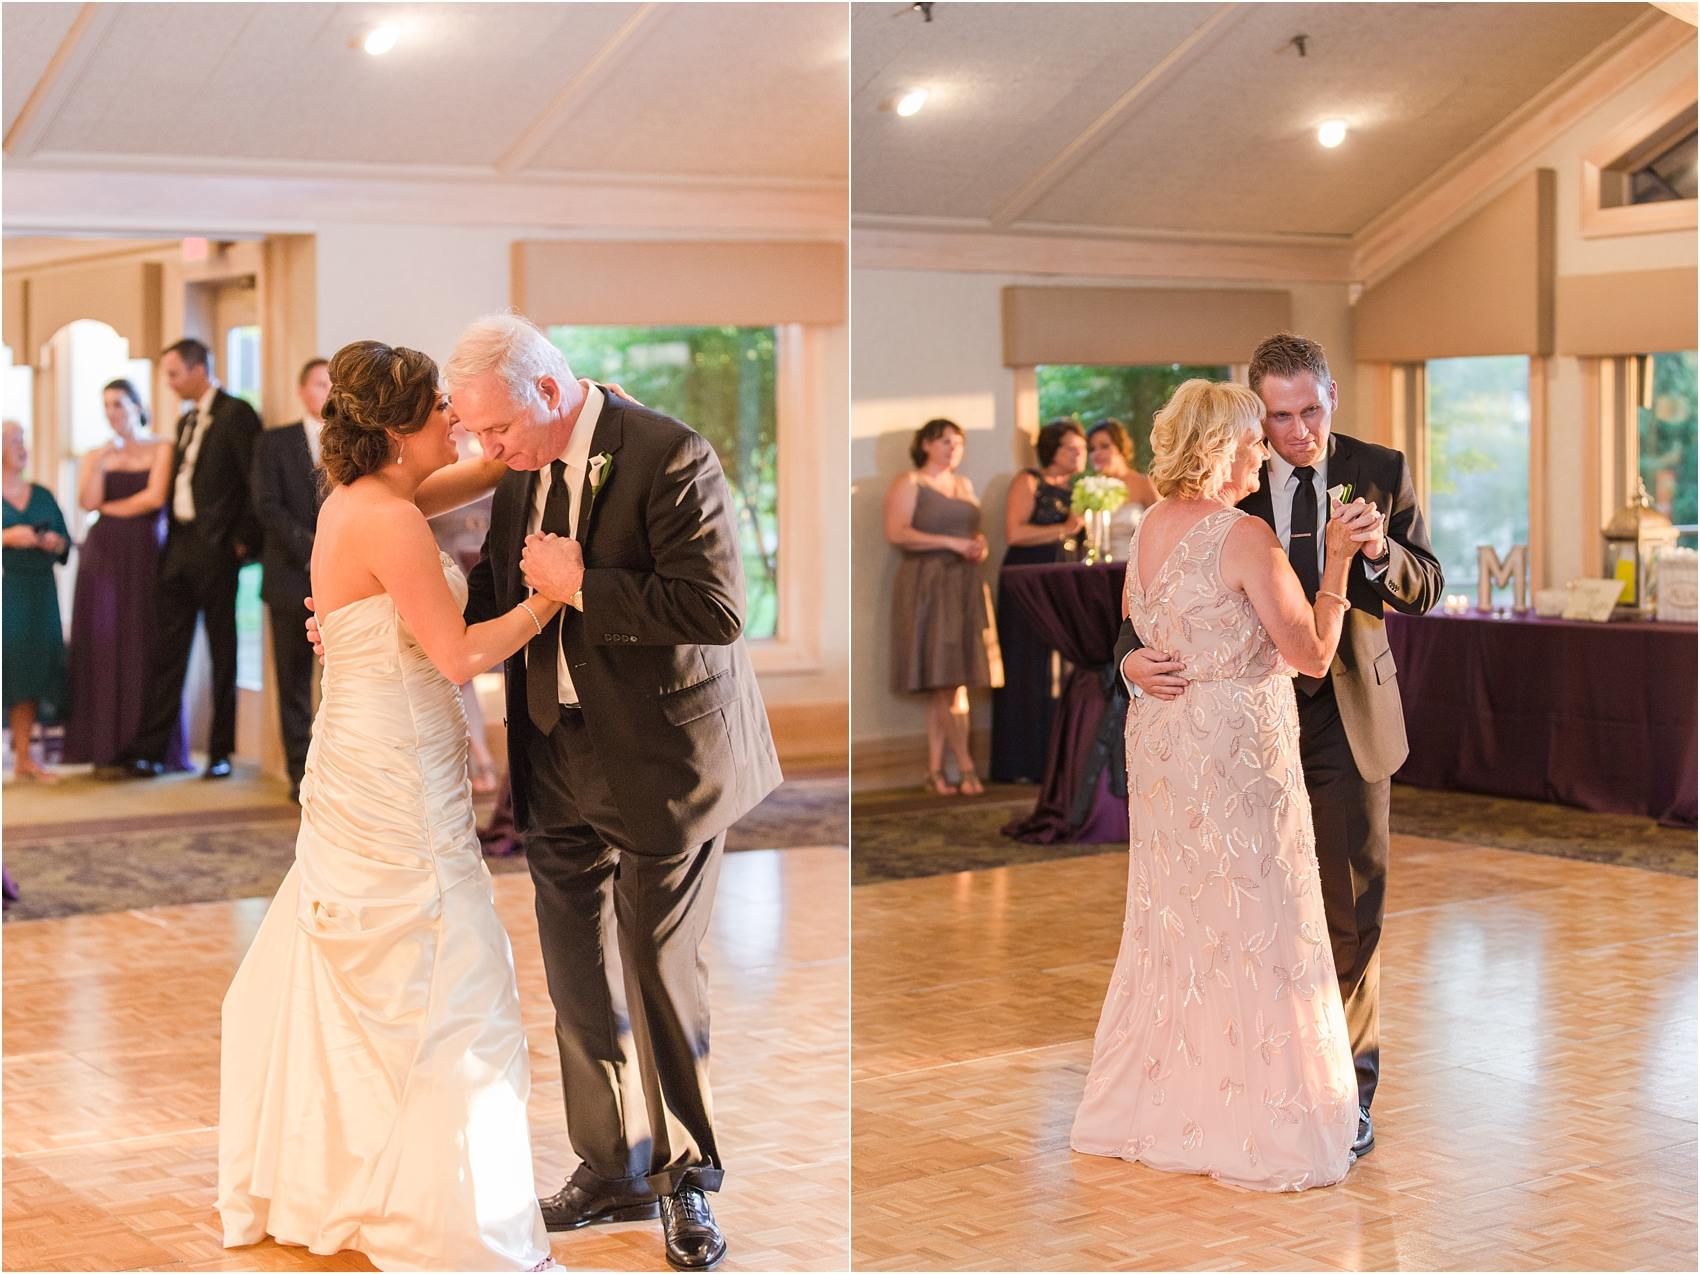 classic-wedding-photos-at-great-oaks-country-club-in-rochester-hills-mi-by-courtney-carolyn-photography_0108.jpg